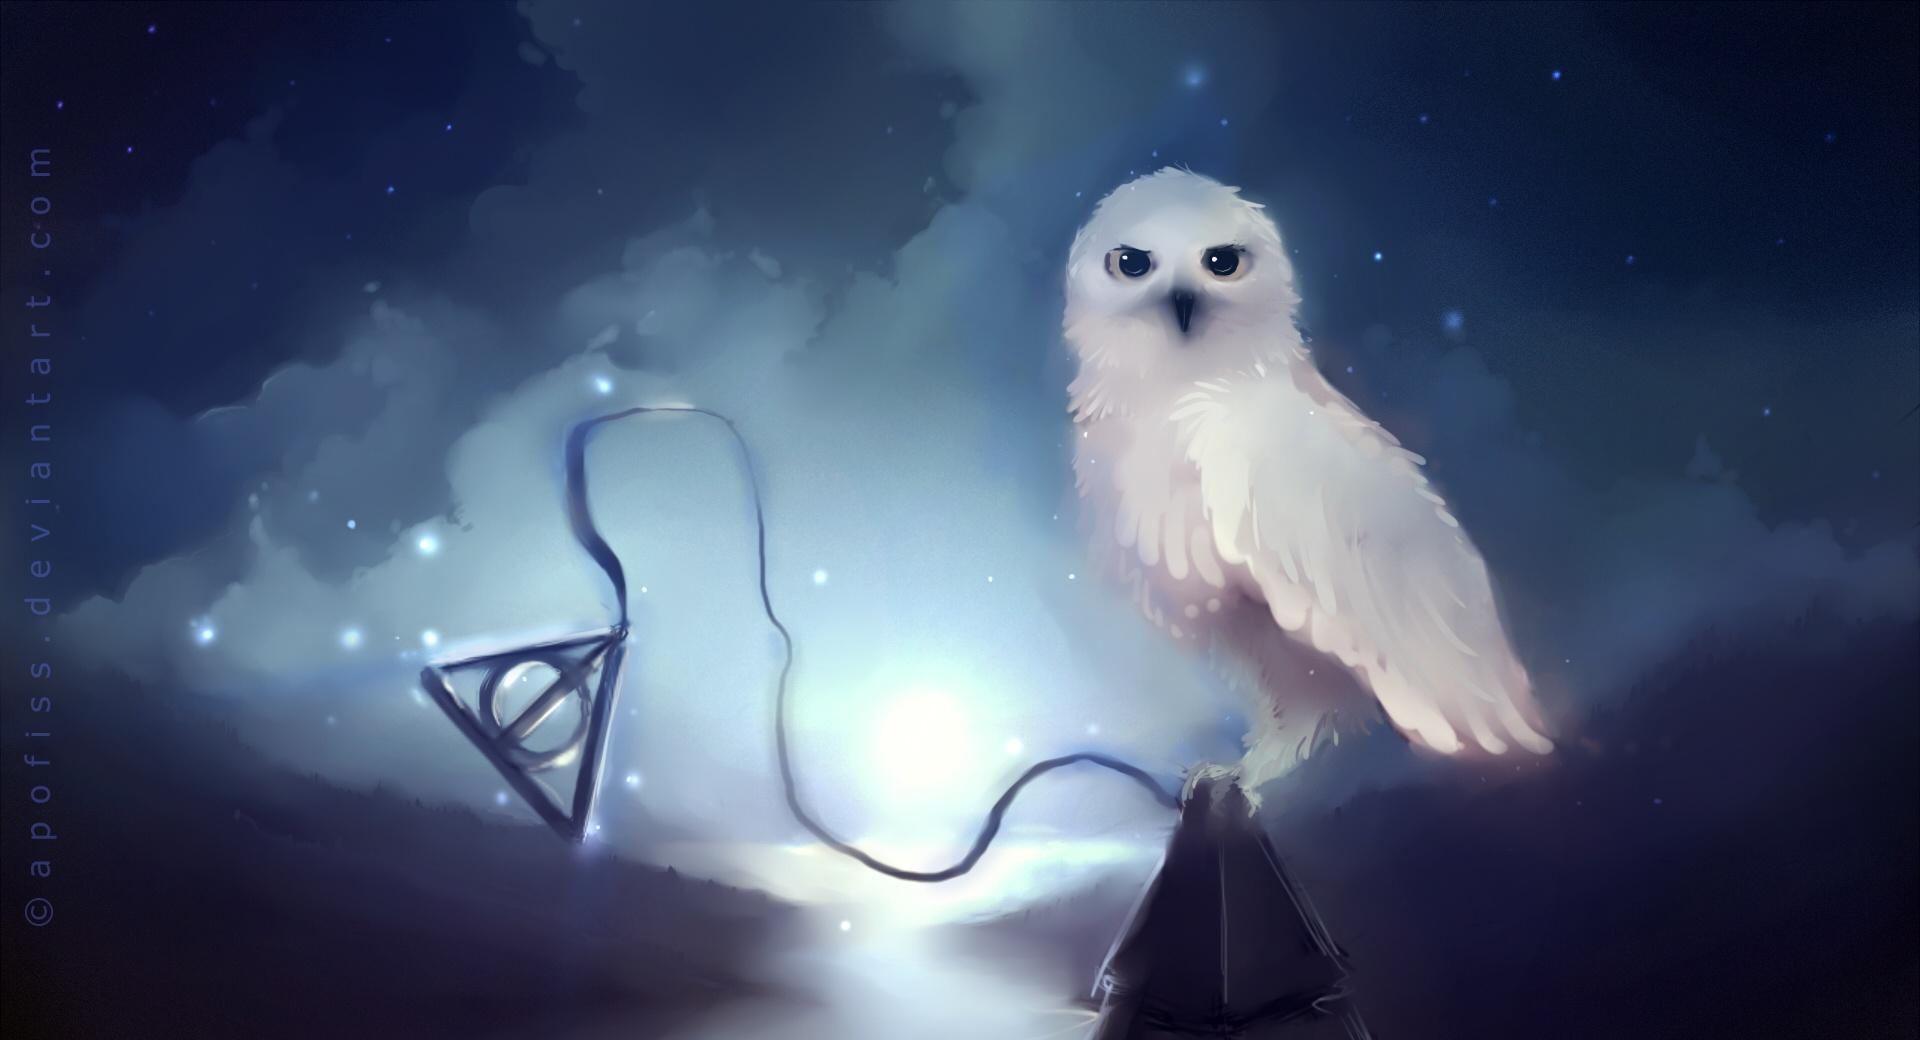 White Owl Painting wallpapers HD quality